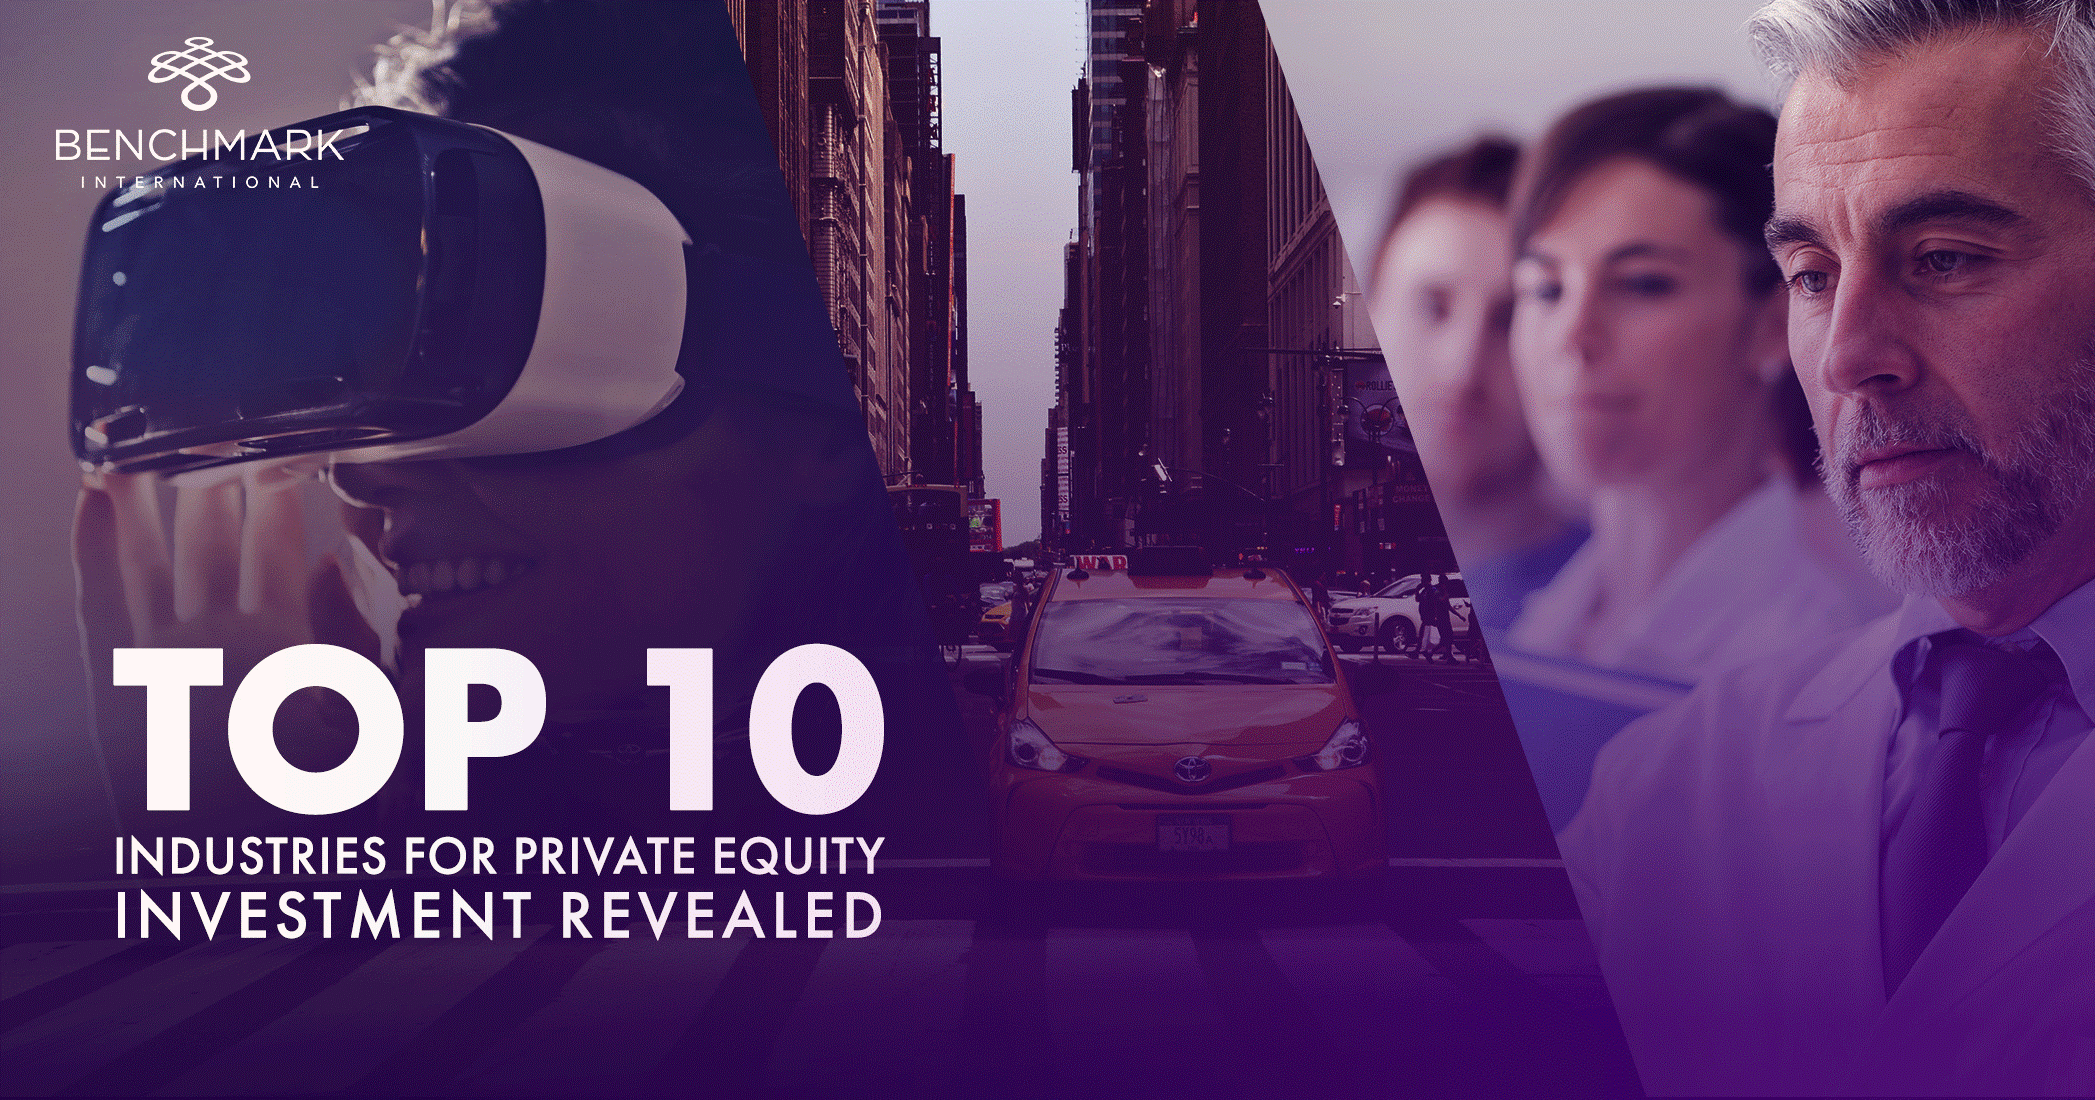 Top 10 Industries for Private Equity Investment Revealed